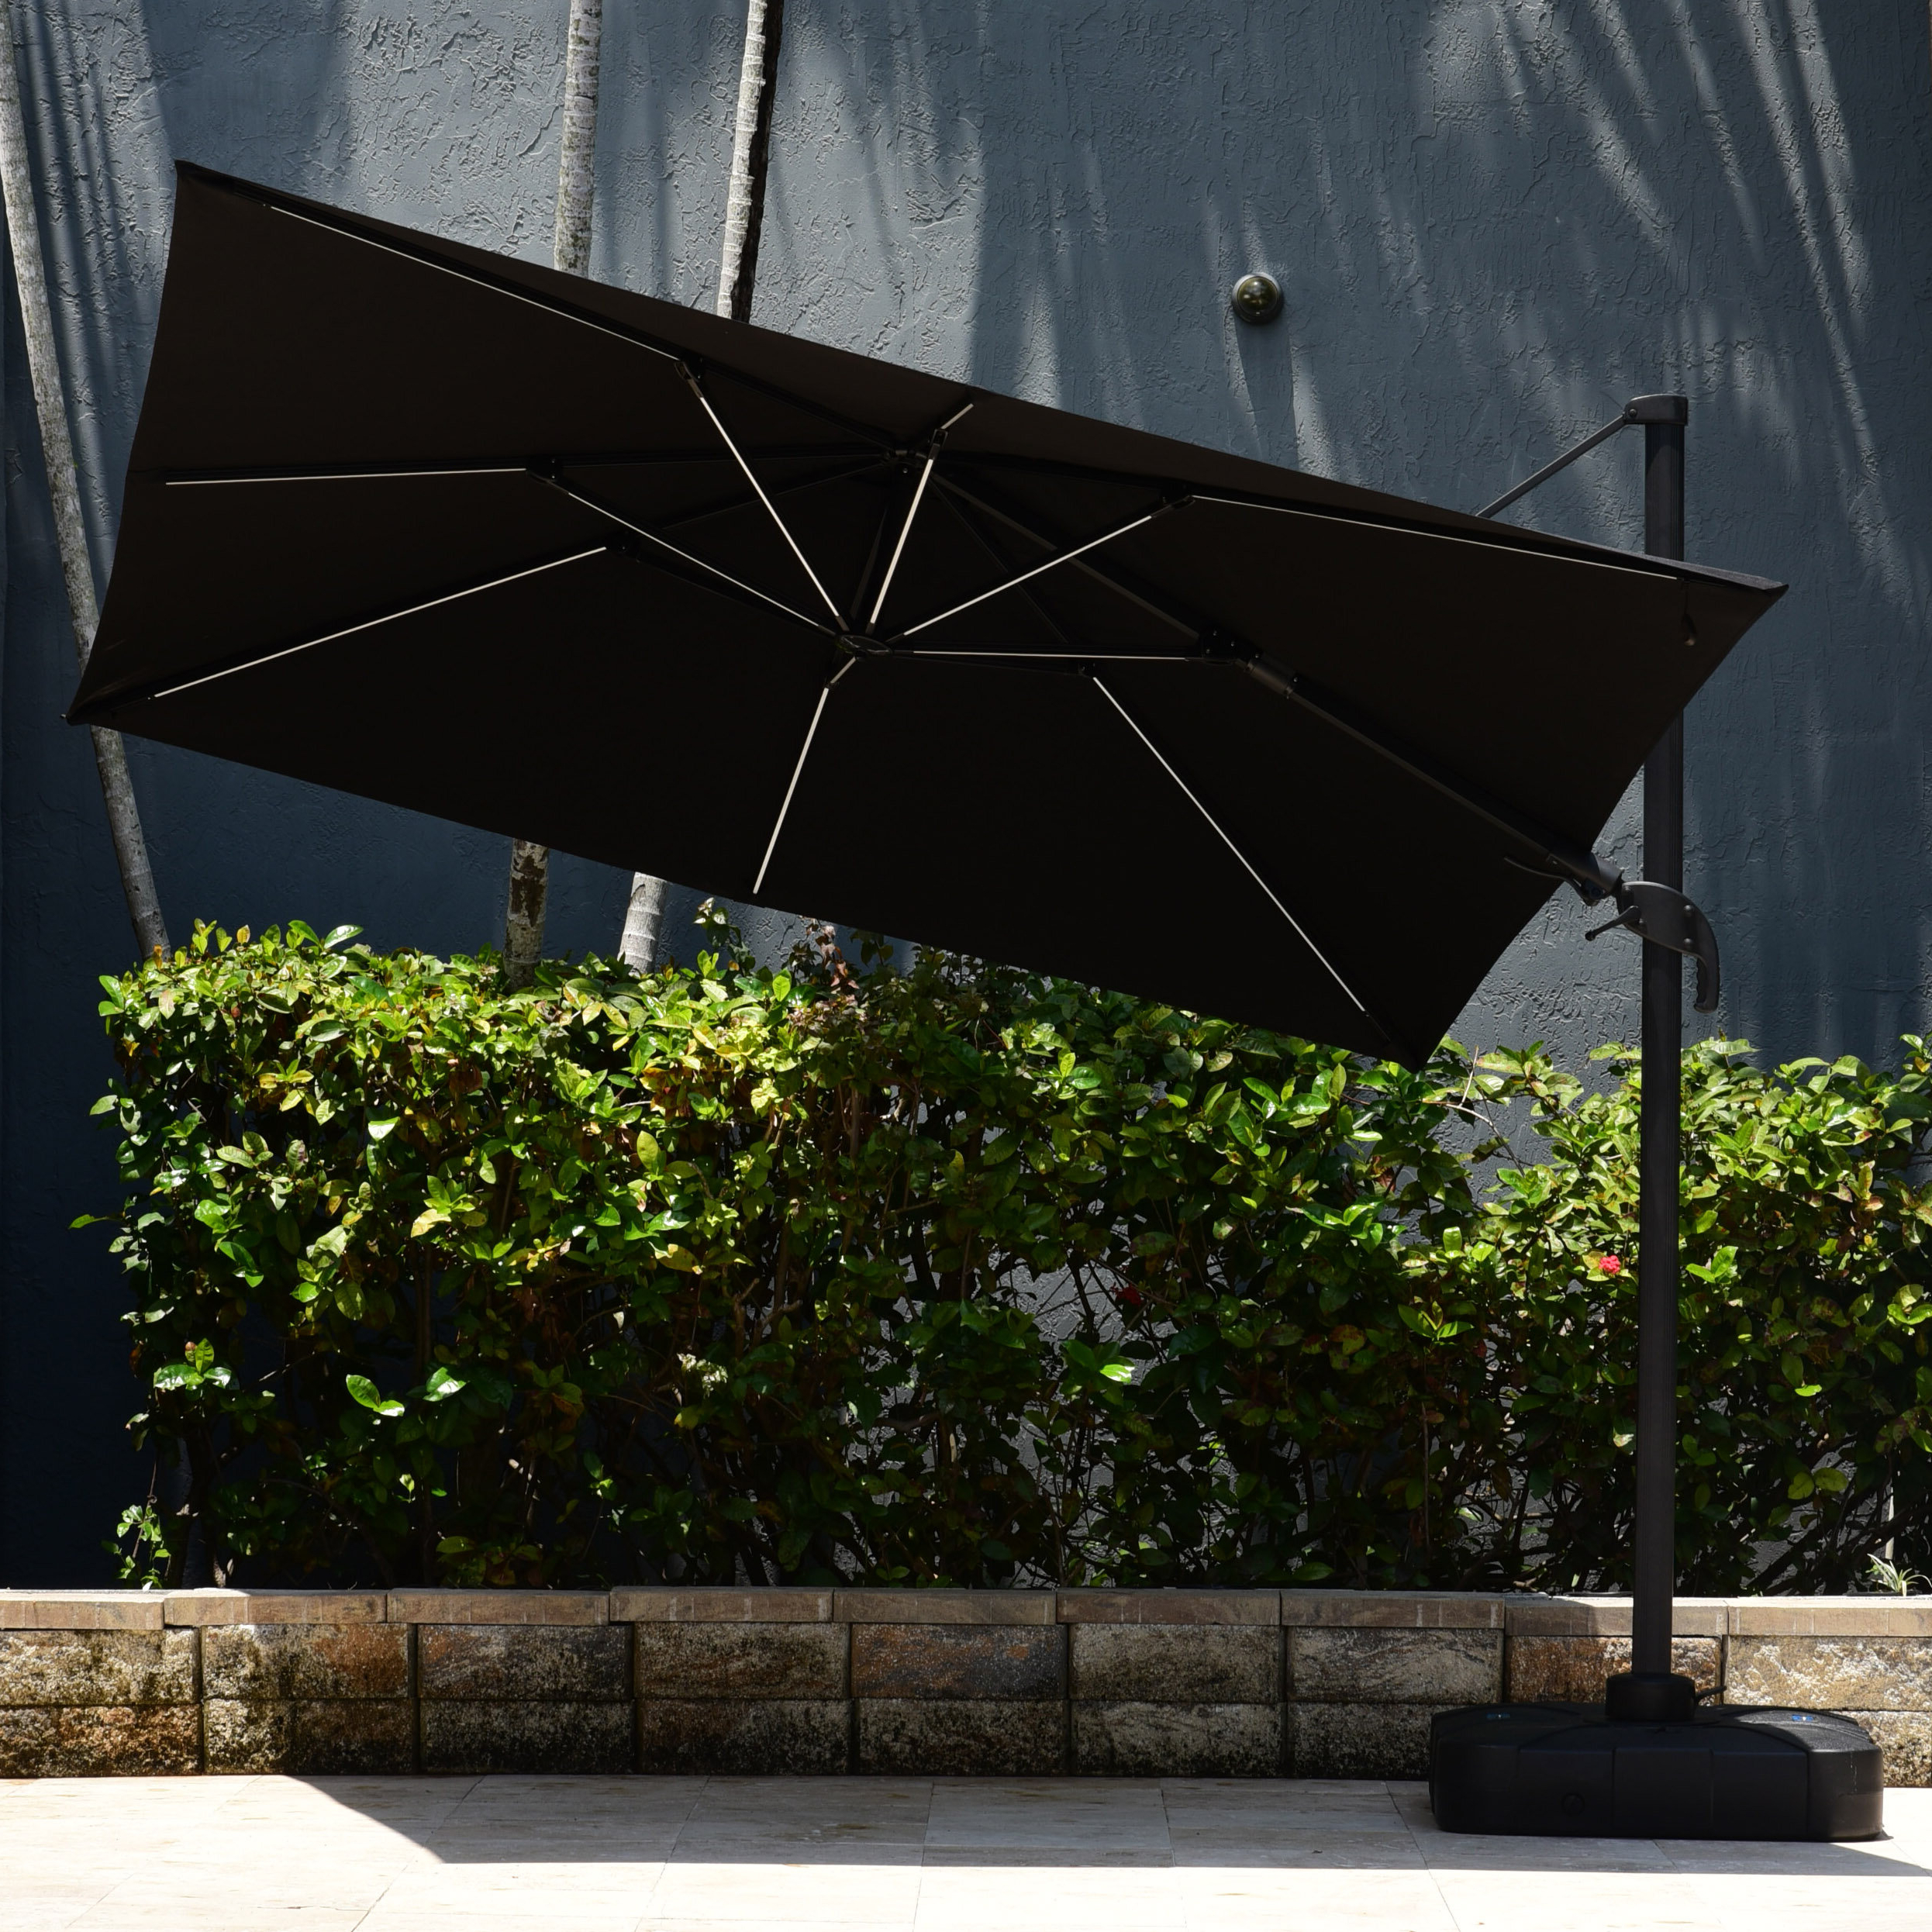 Macclesfield Square Cantilever Umbrellas Throughout Most Recently Released Spitler 10' Square Cantilever Umbrella (Gallery 20 of 20)